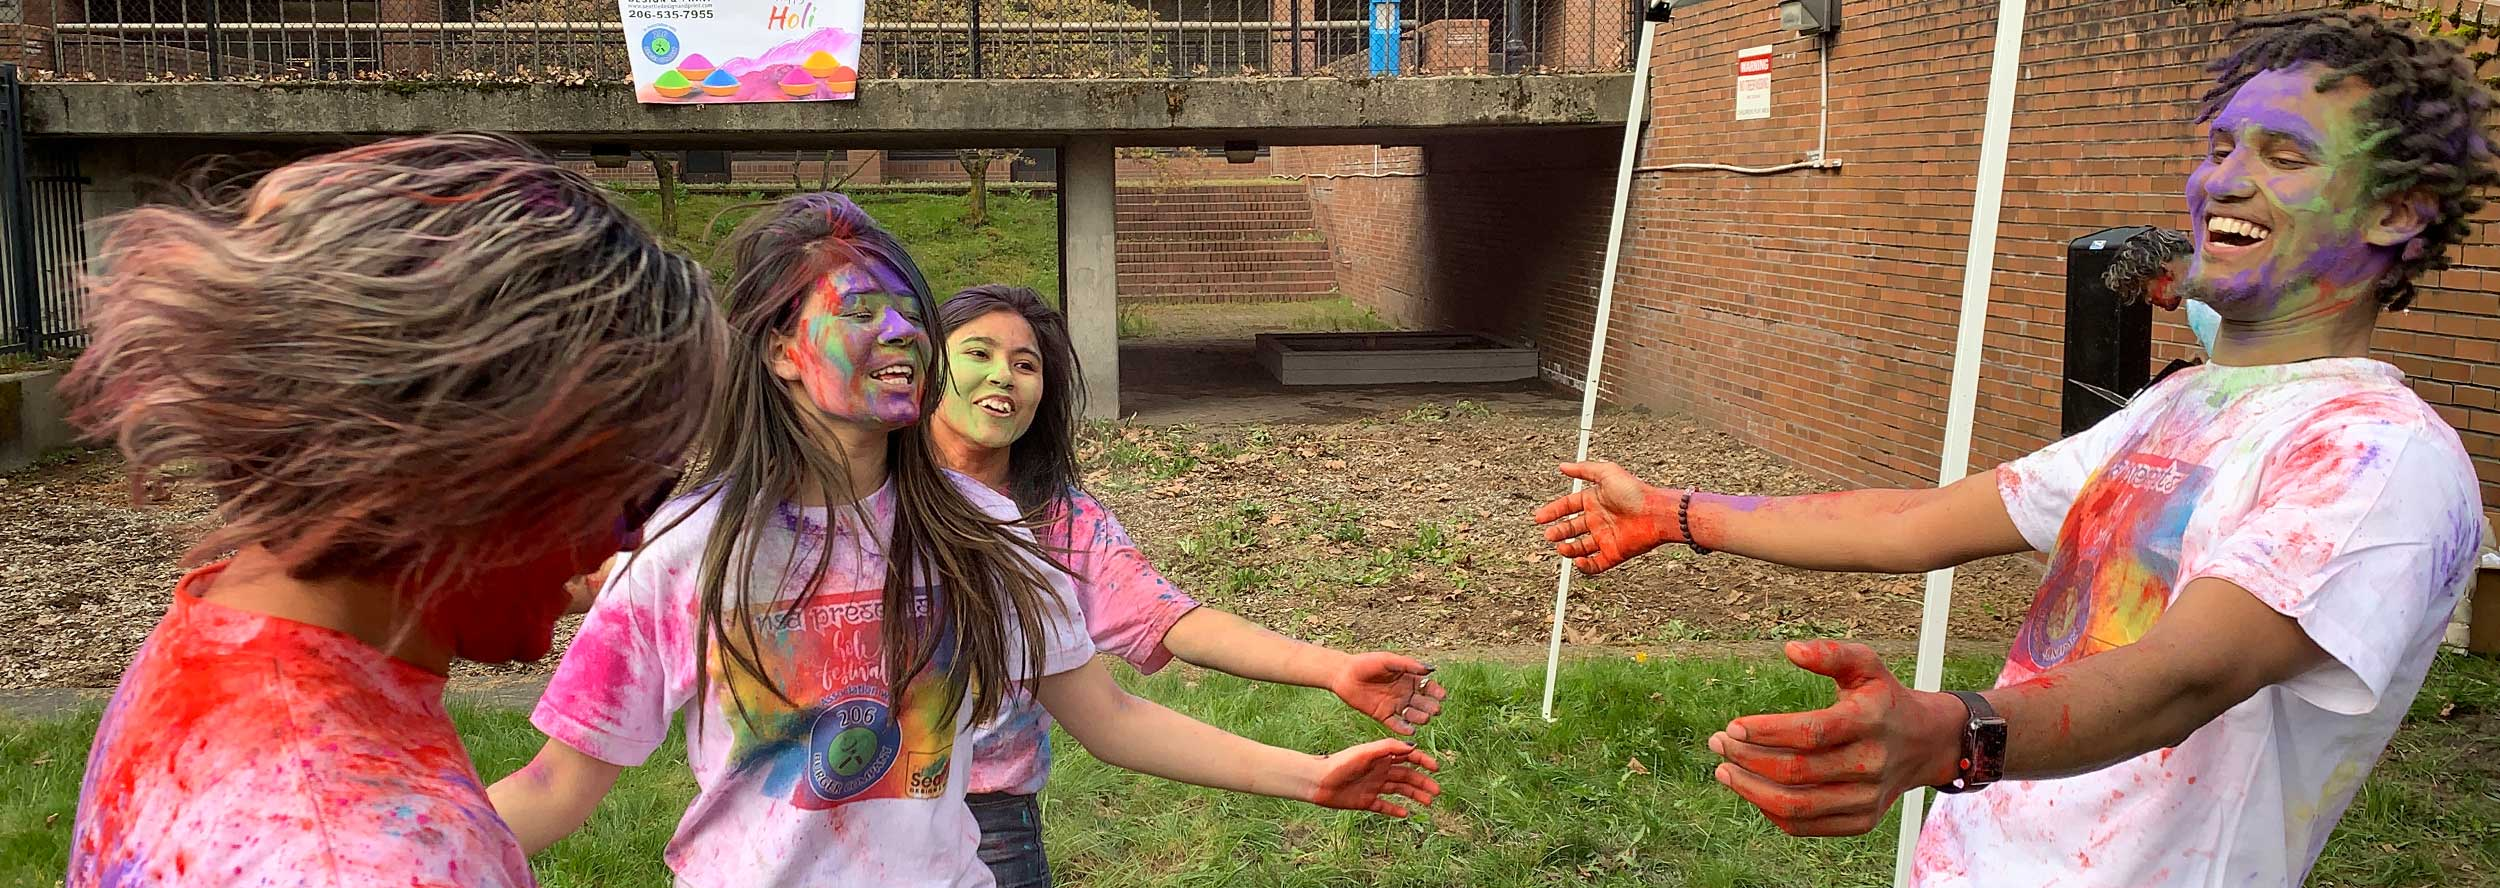 Student government painting and joking around at an event